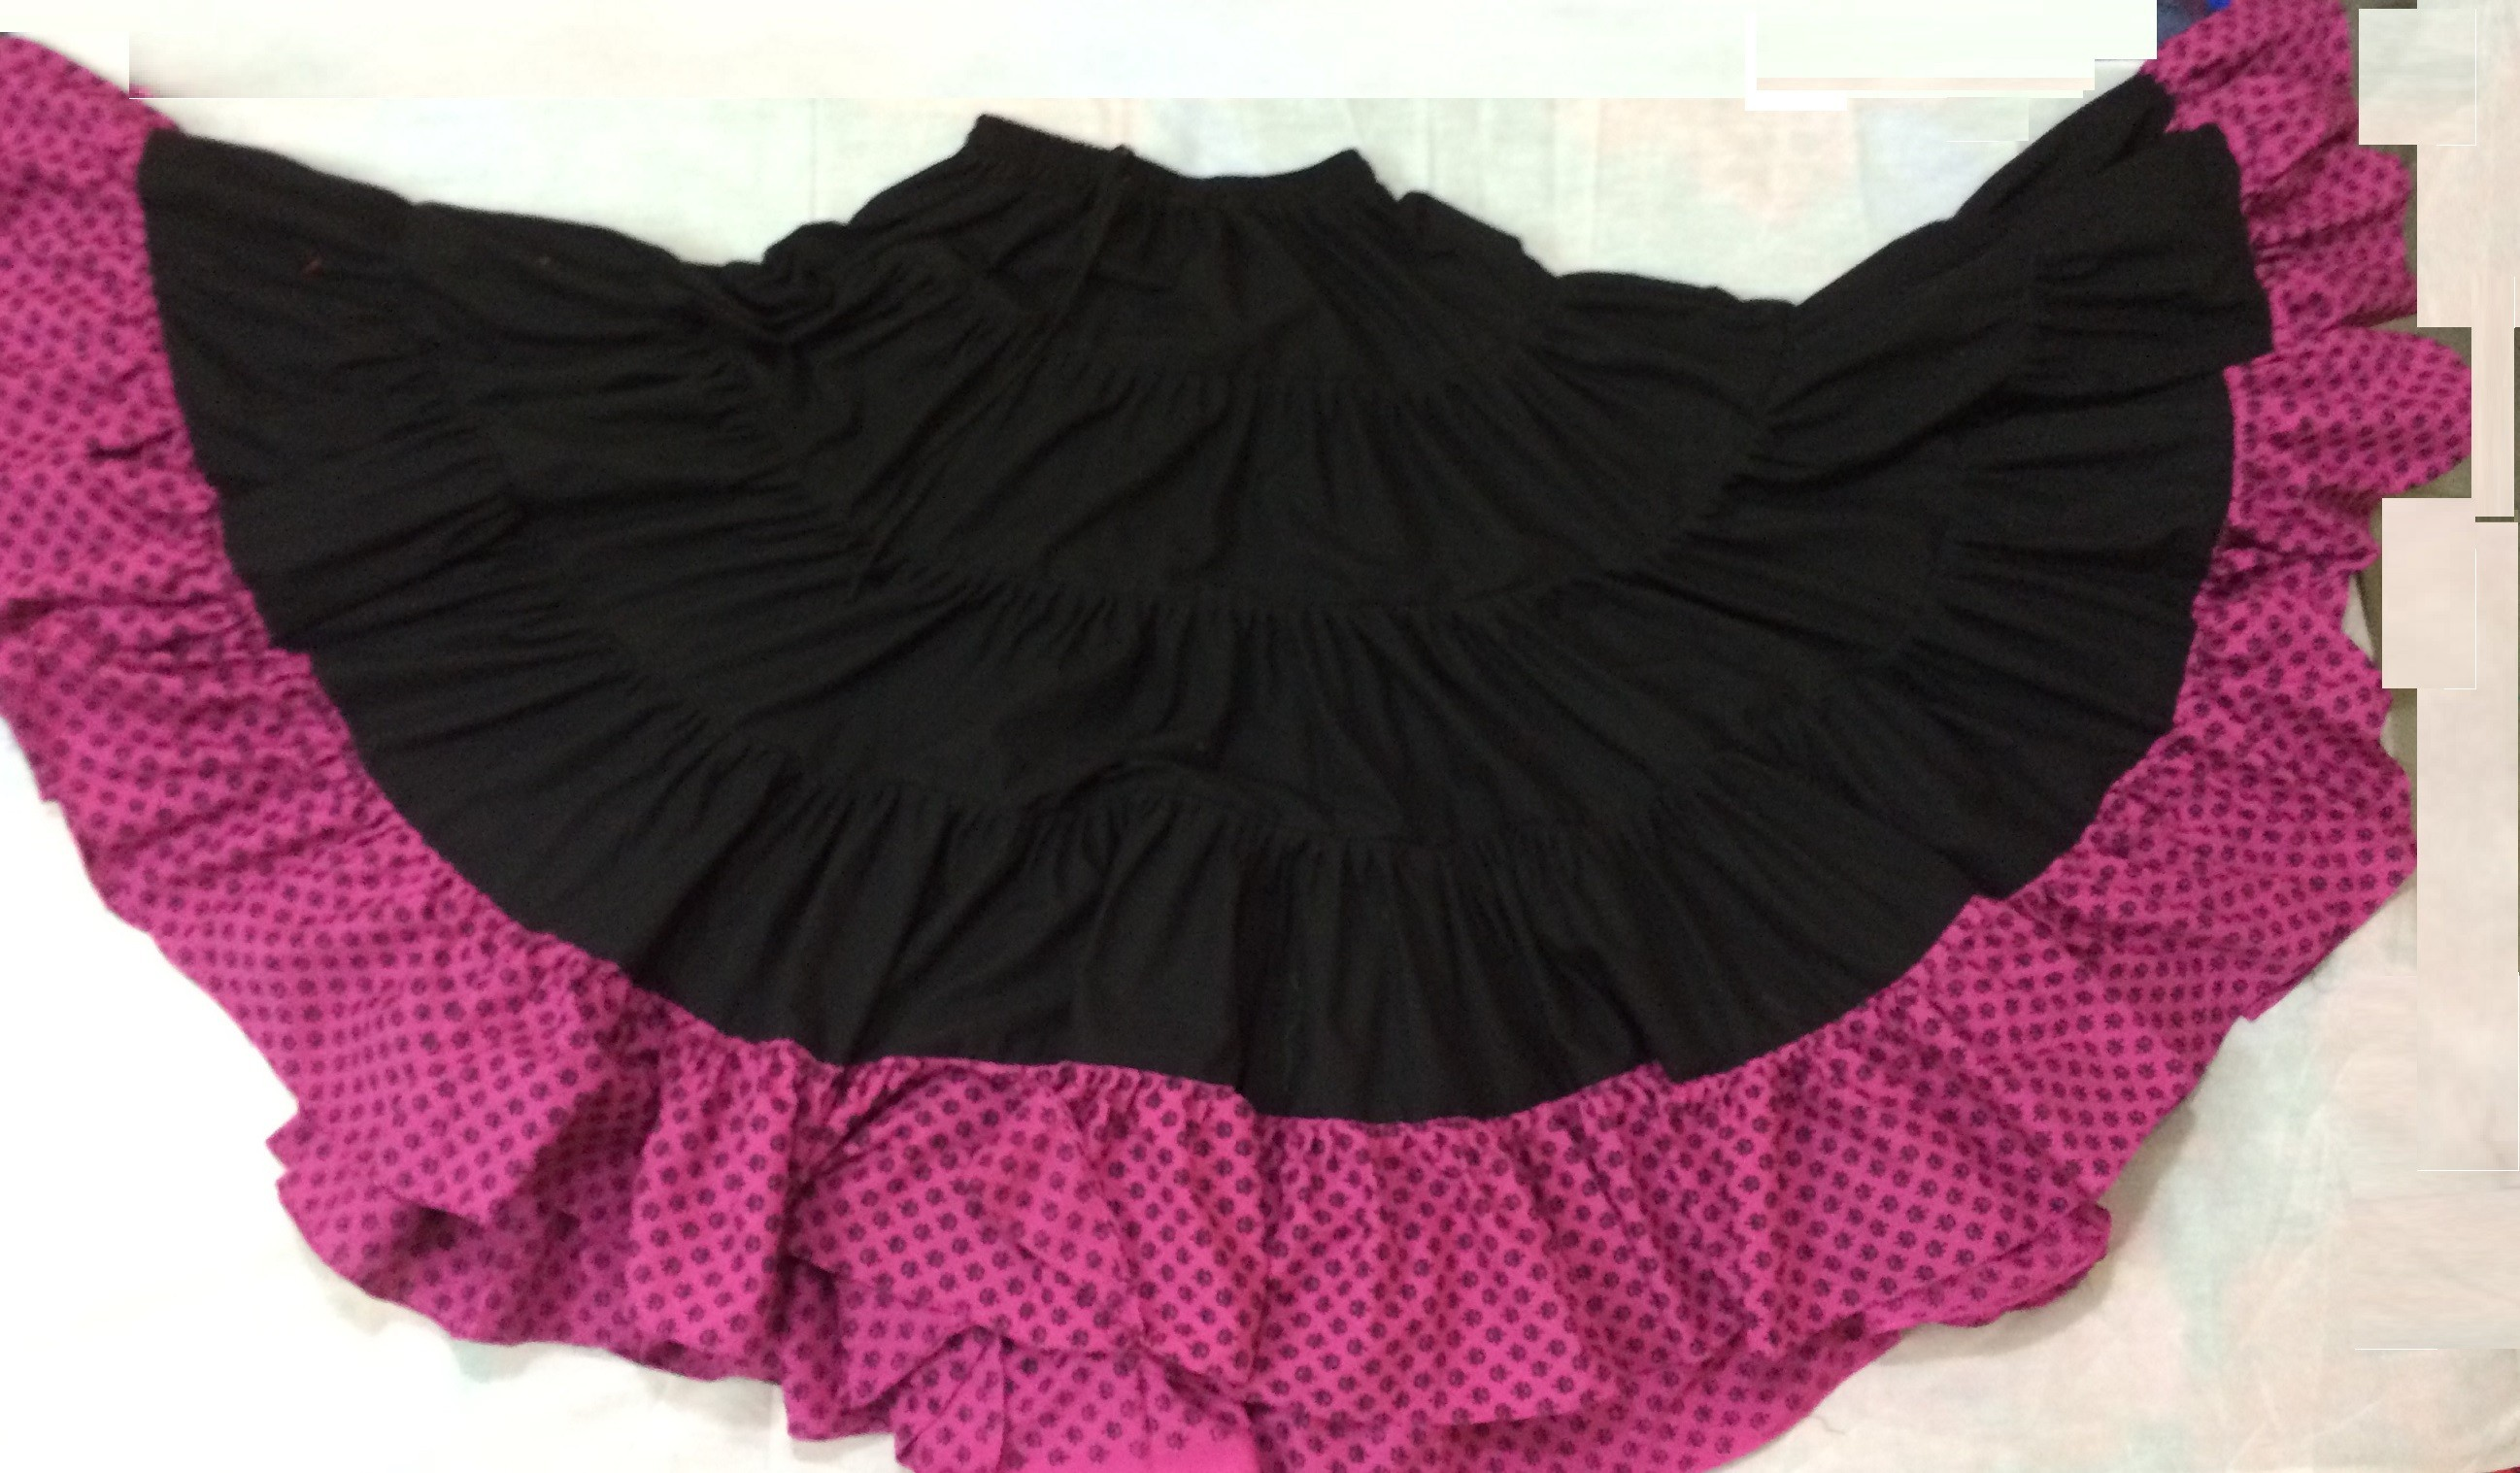 25 yard gypsy skirt 104